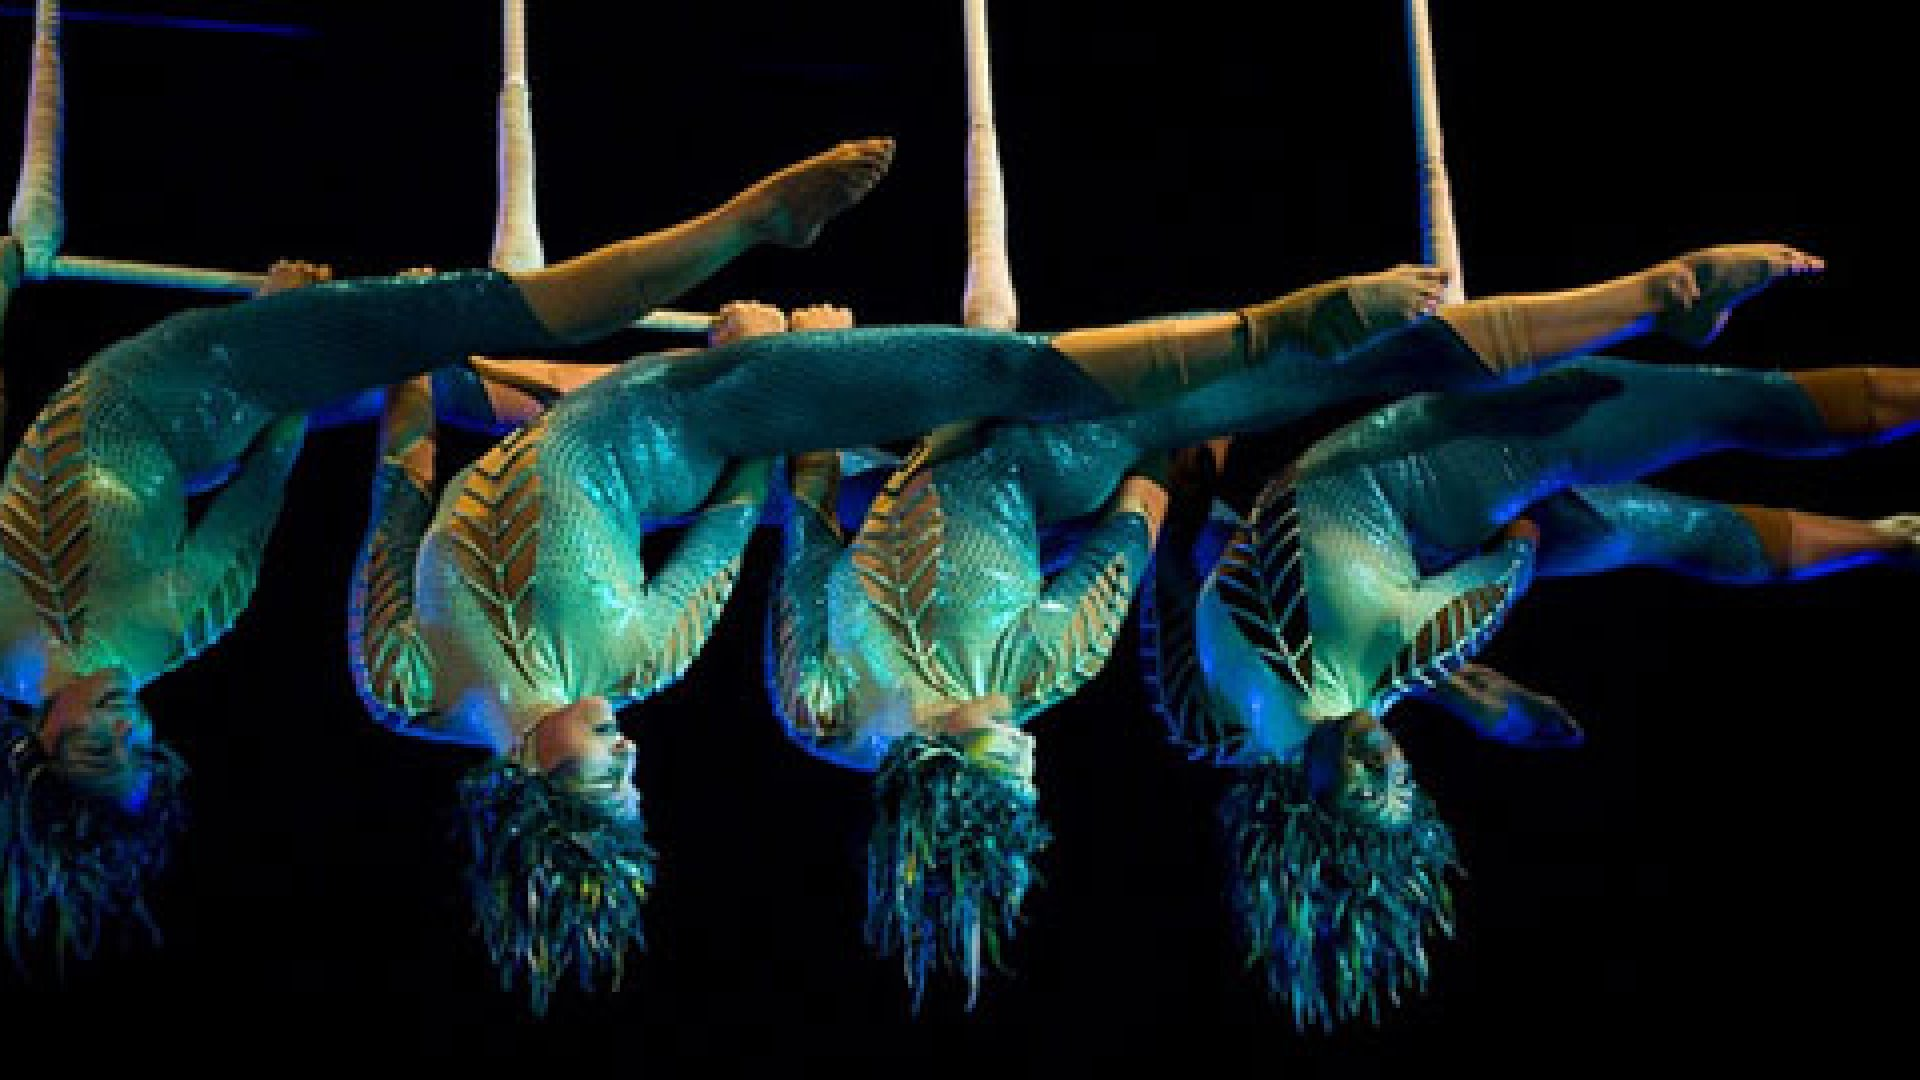 Where does Cirque du Soleil's constant flow of creativity come from? It's thanks, in large part, to a companywide policy that asks employees to look for inspiration everywhere.